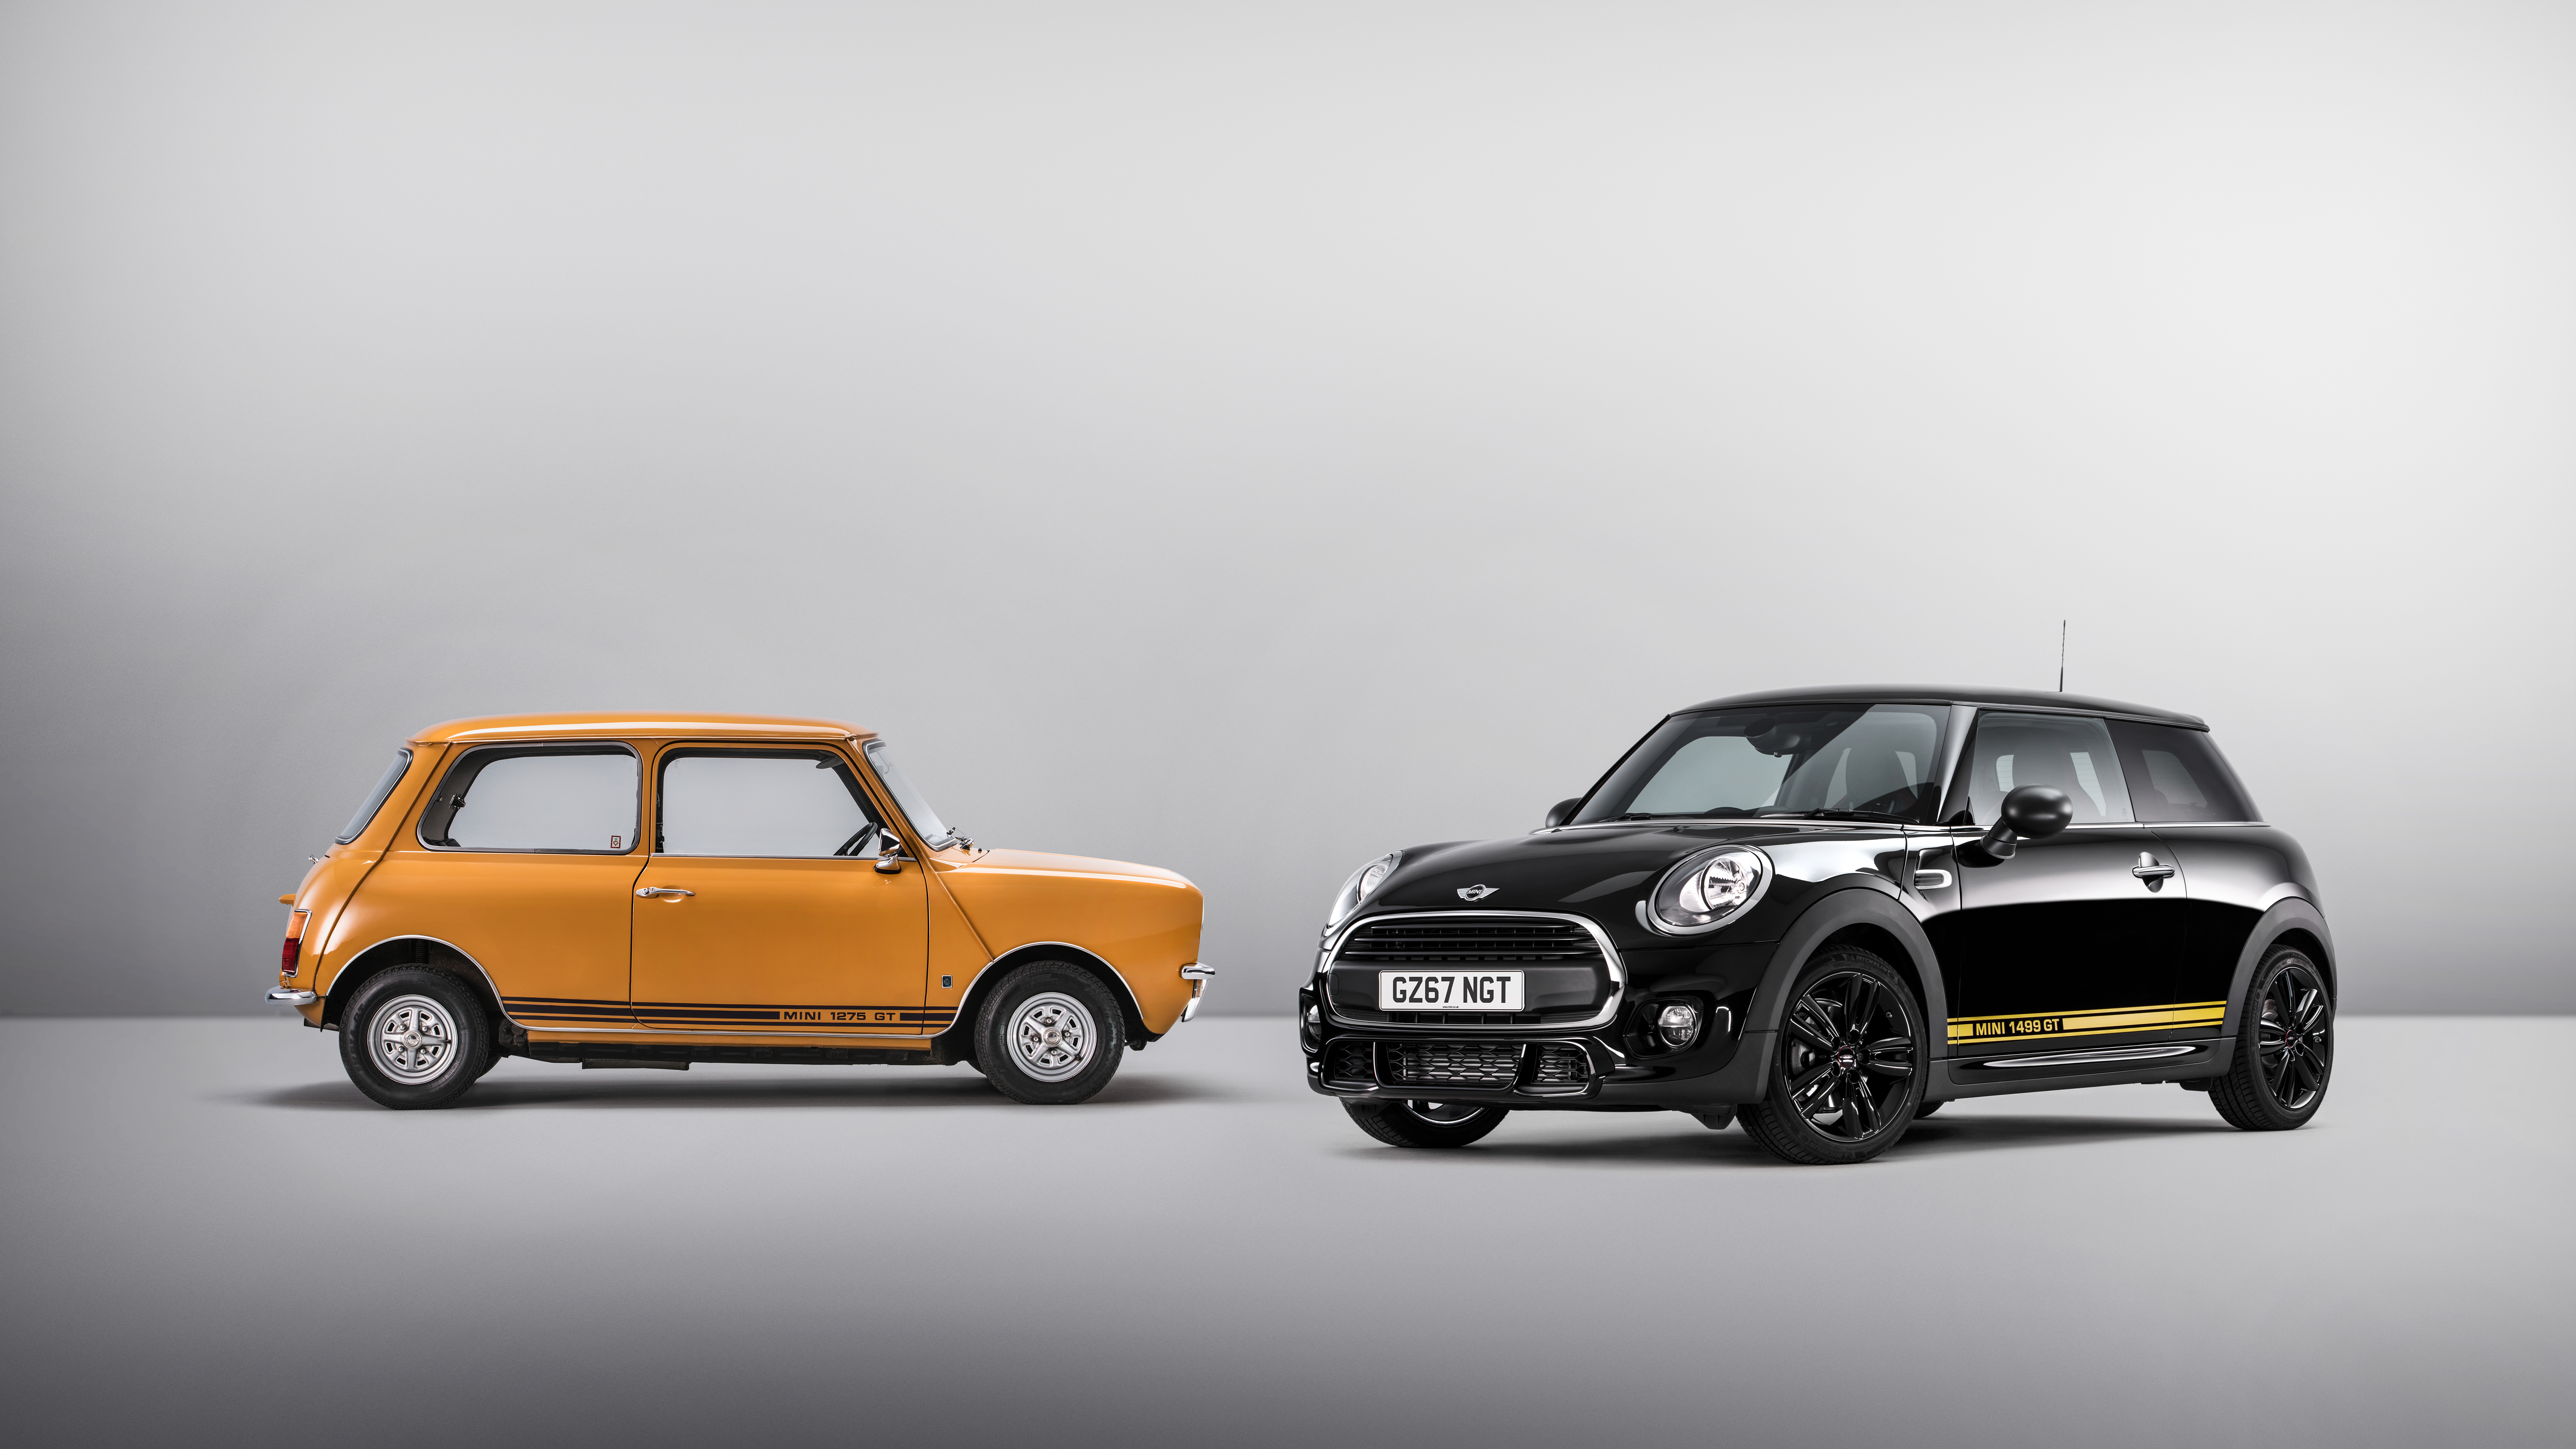 THE NEW MINI 1499 GT WITH FREE INSURANCE OFFER